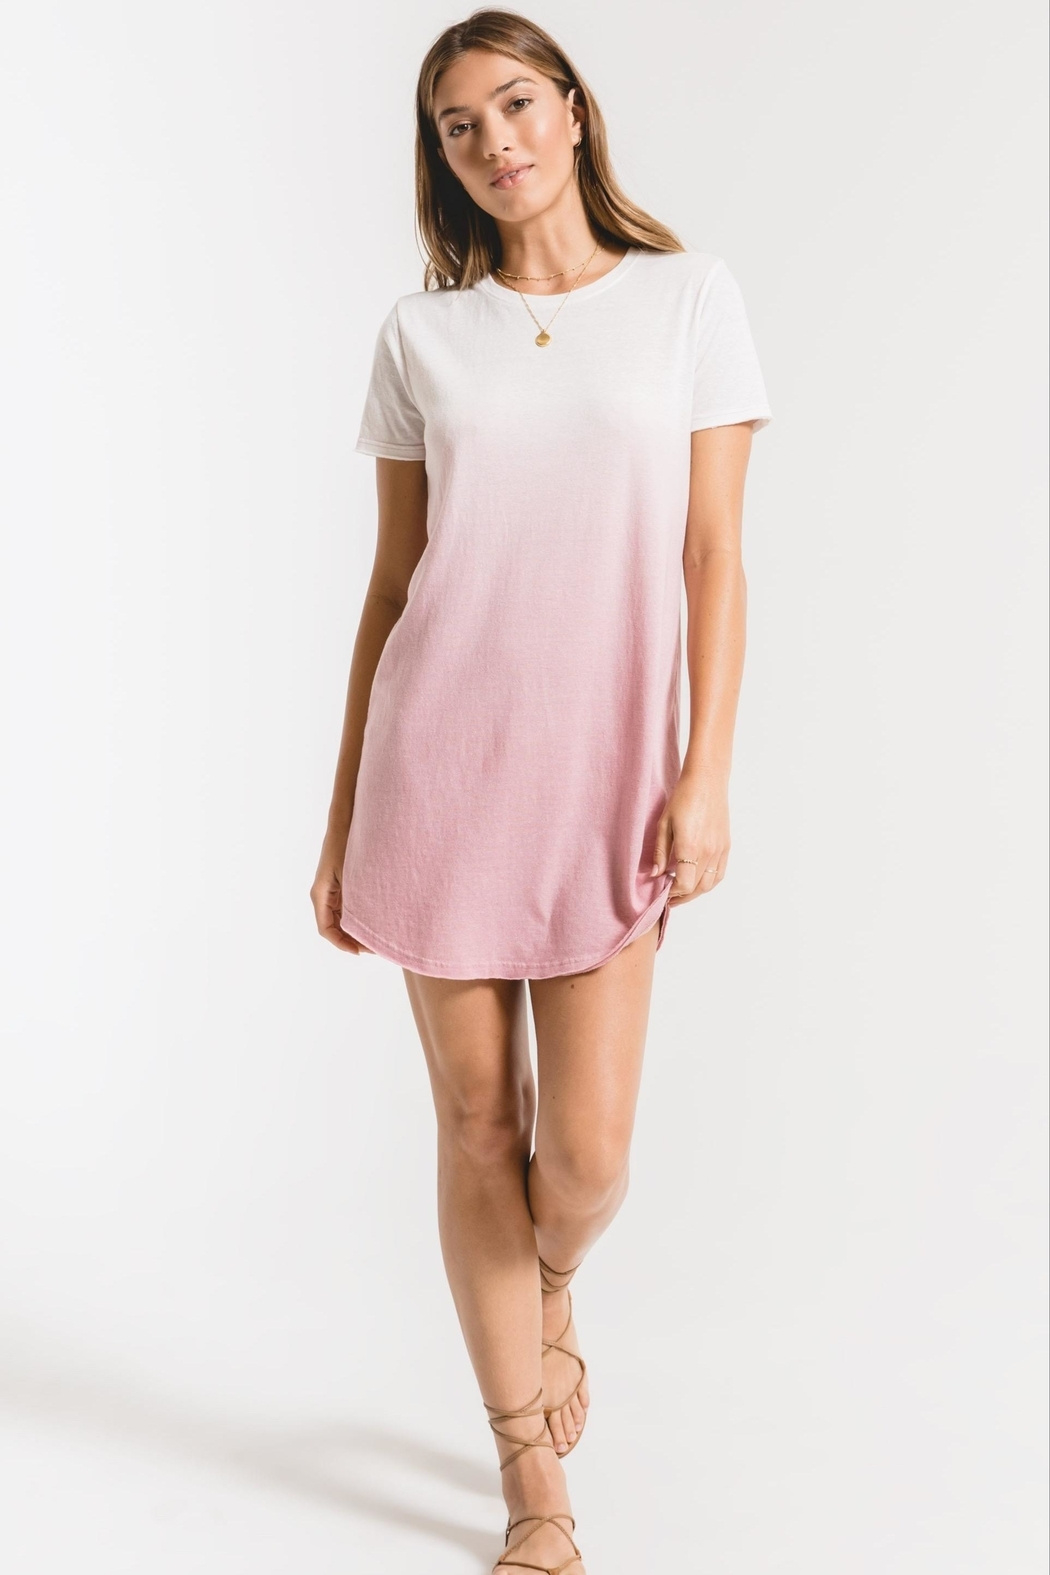 z supply Ombre Dip-Dye Dress - Front Cropped Image